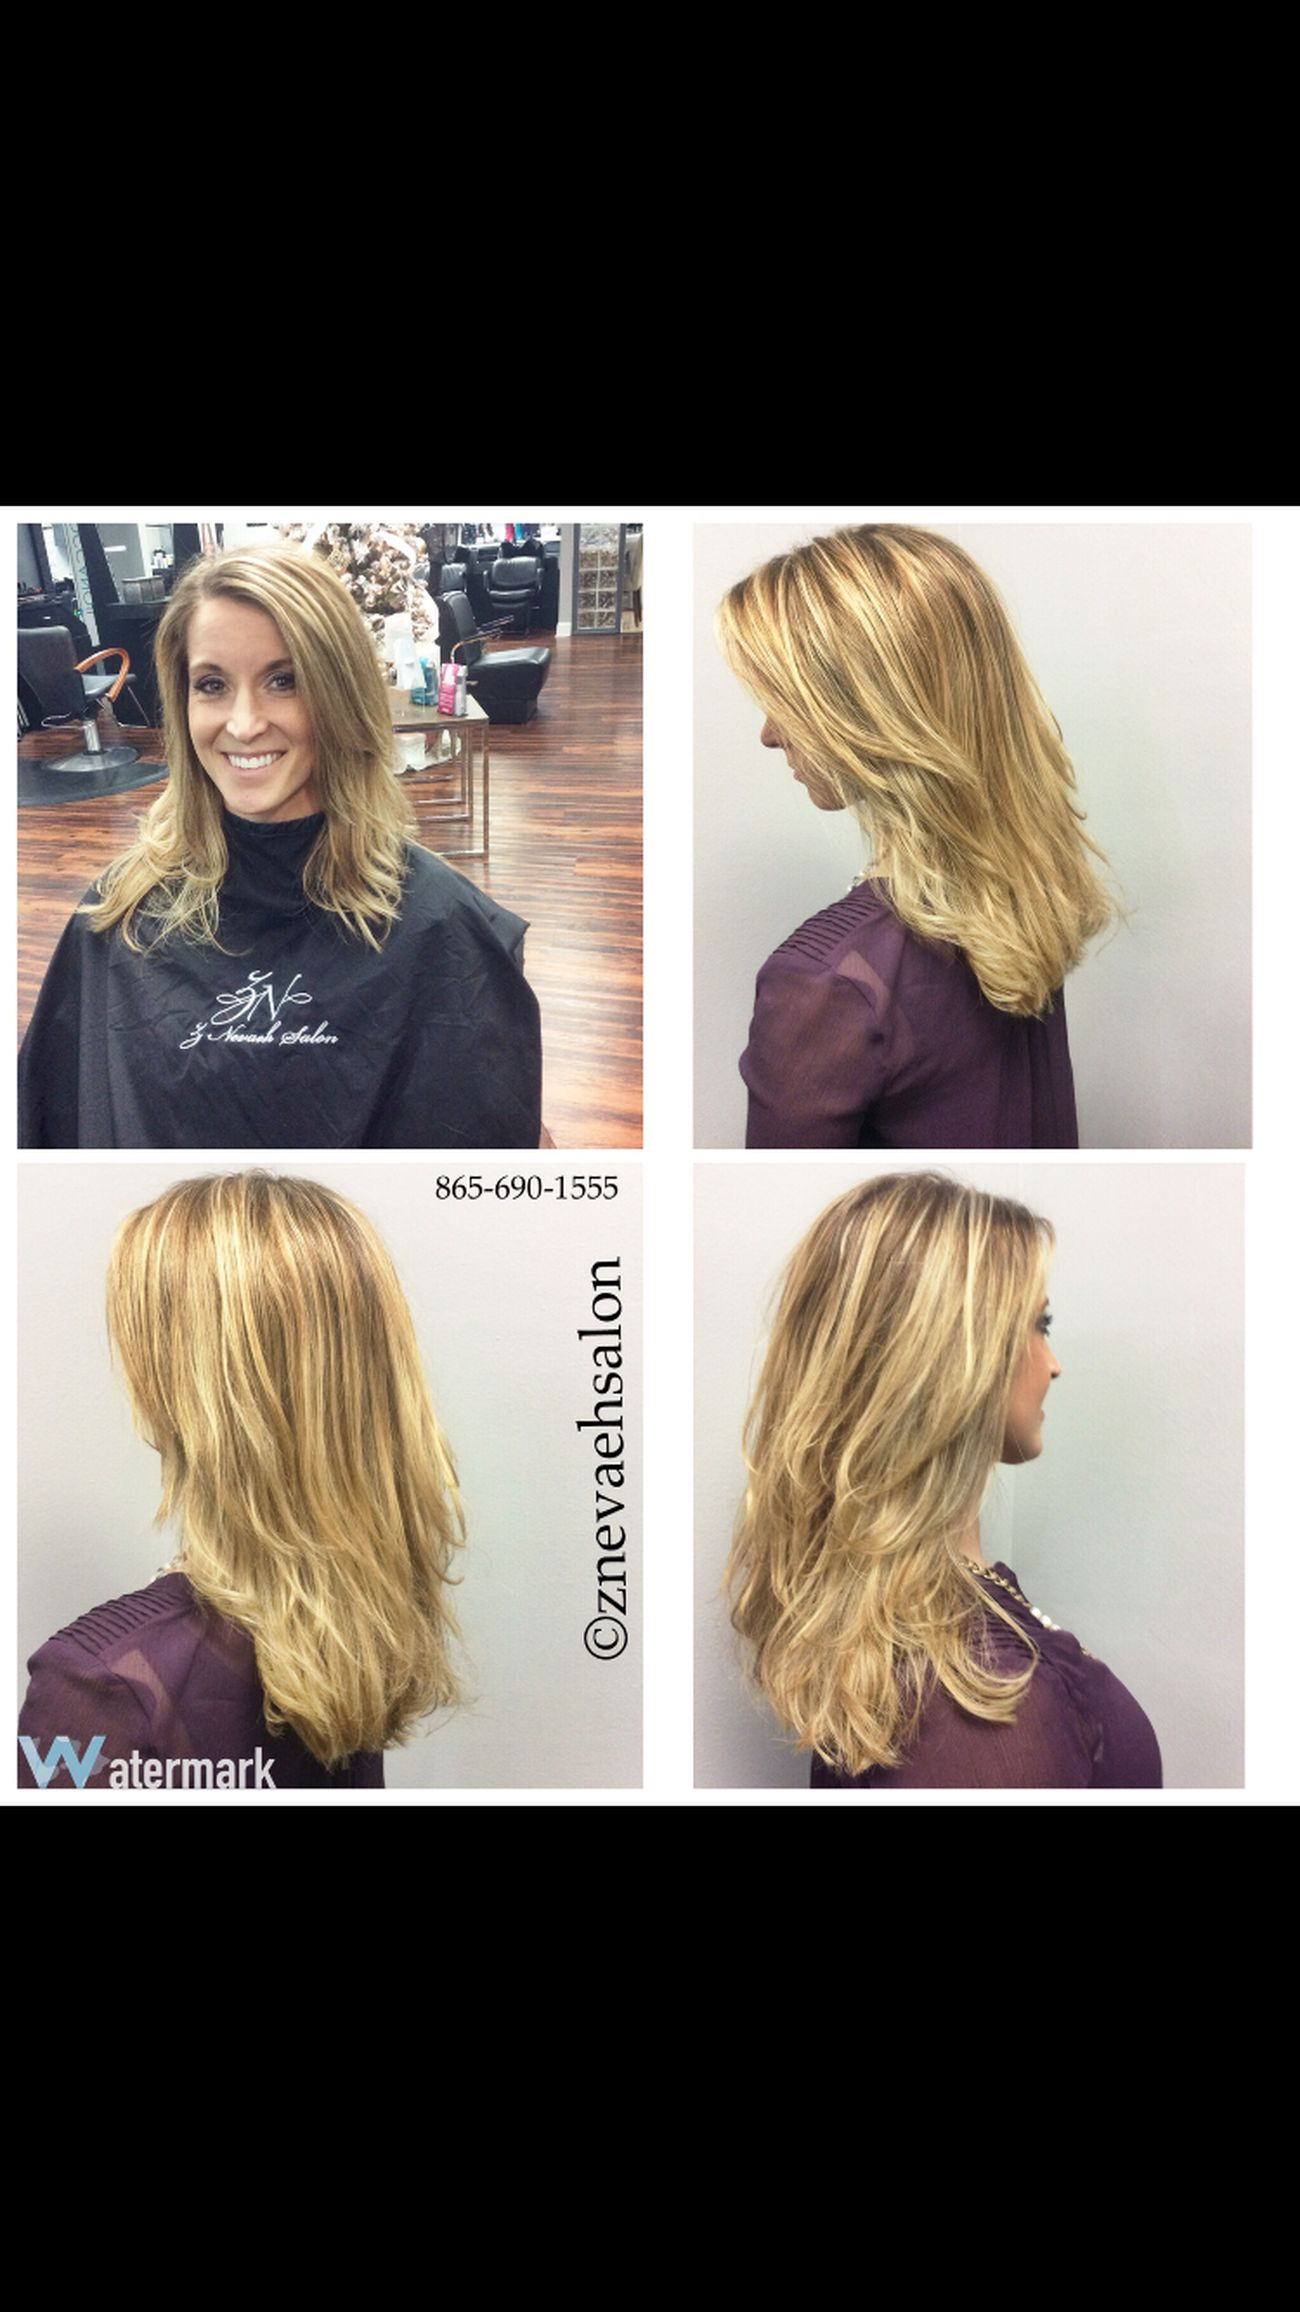 Tossled Hair Using Tecniart @znevaehsalon @lorealprofessionnel Check This Out Salonlife Lorealprofessionnelsalon Z Nevaeh Salon L'Oreal Professionnel Eye4photography # Photooftheday Knoxville Salon Long Hair Haircut Haircolor Blondehair Glamour Blonde Tecni.art Hairtrends